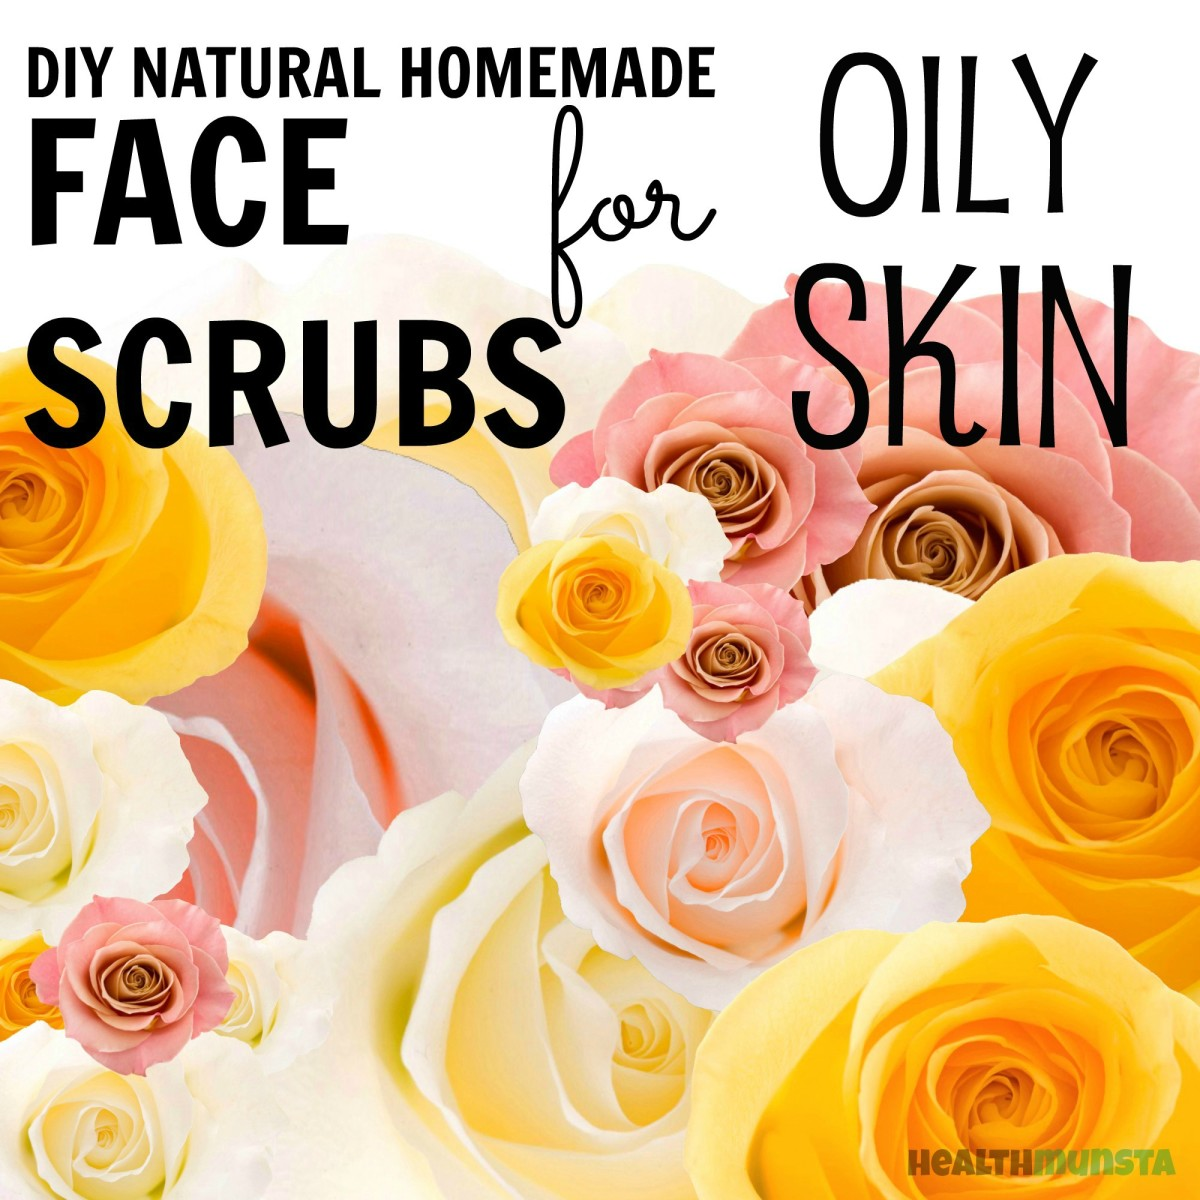 3 DIY Homemade Face Scrub Recipes for Oily Skin